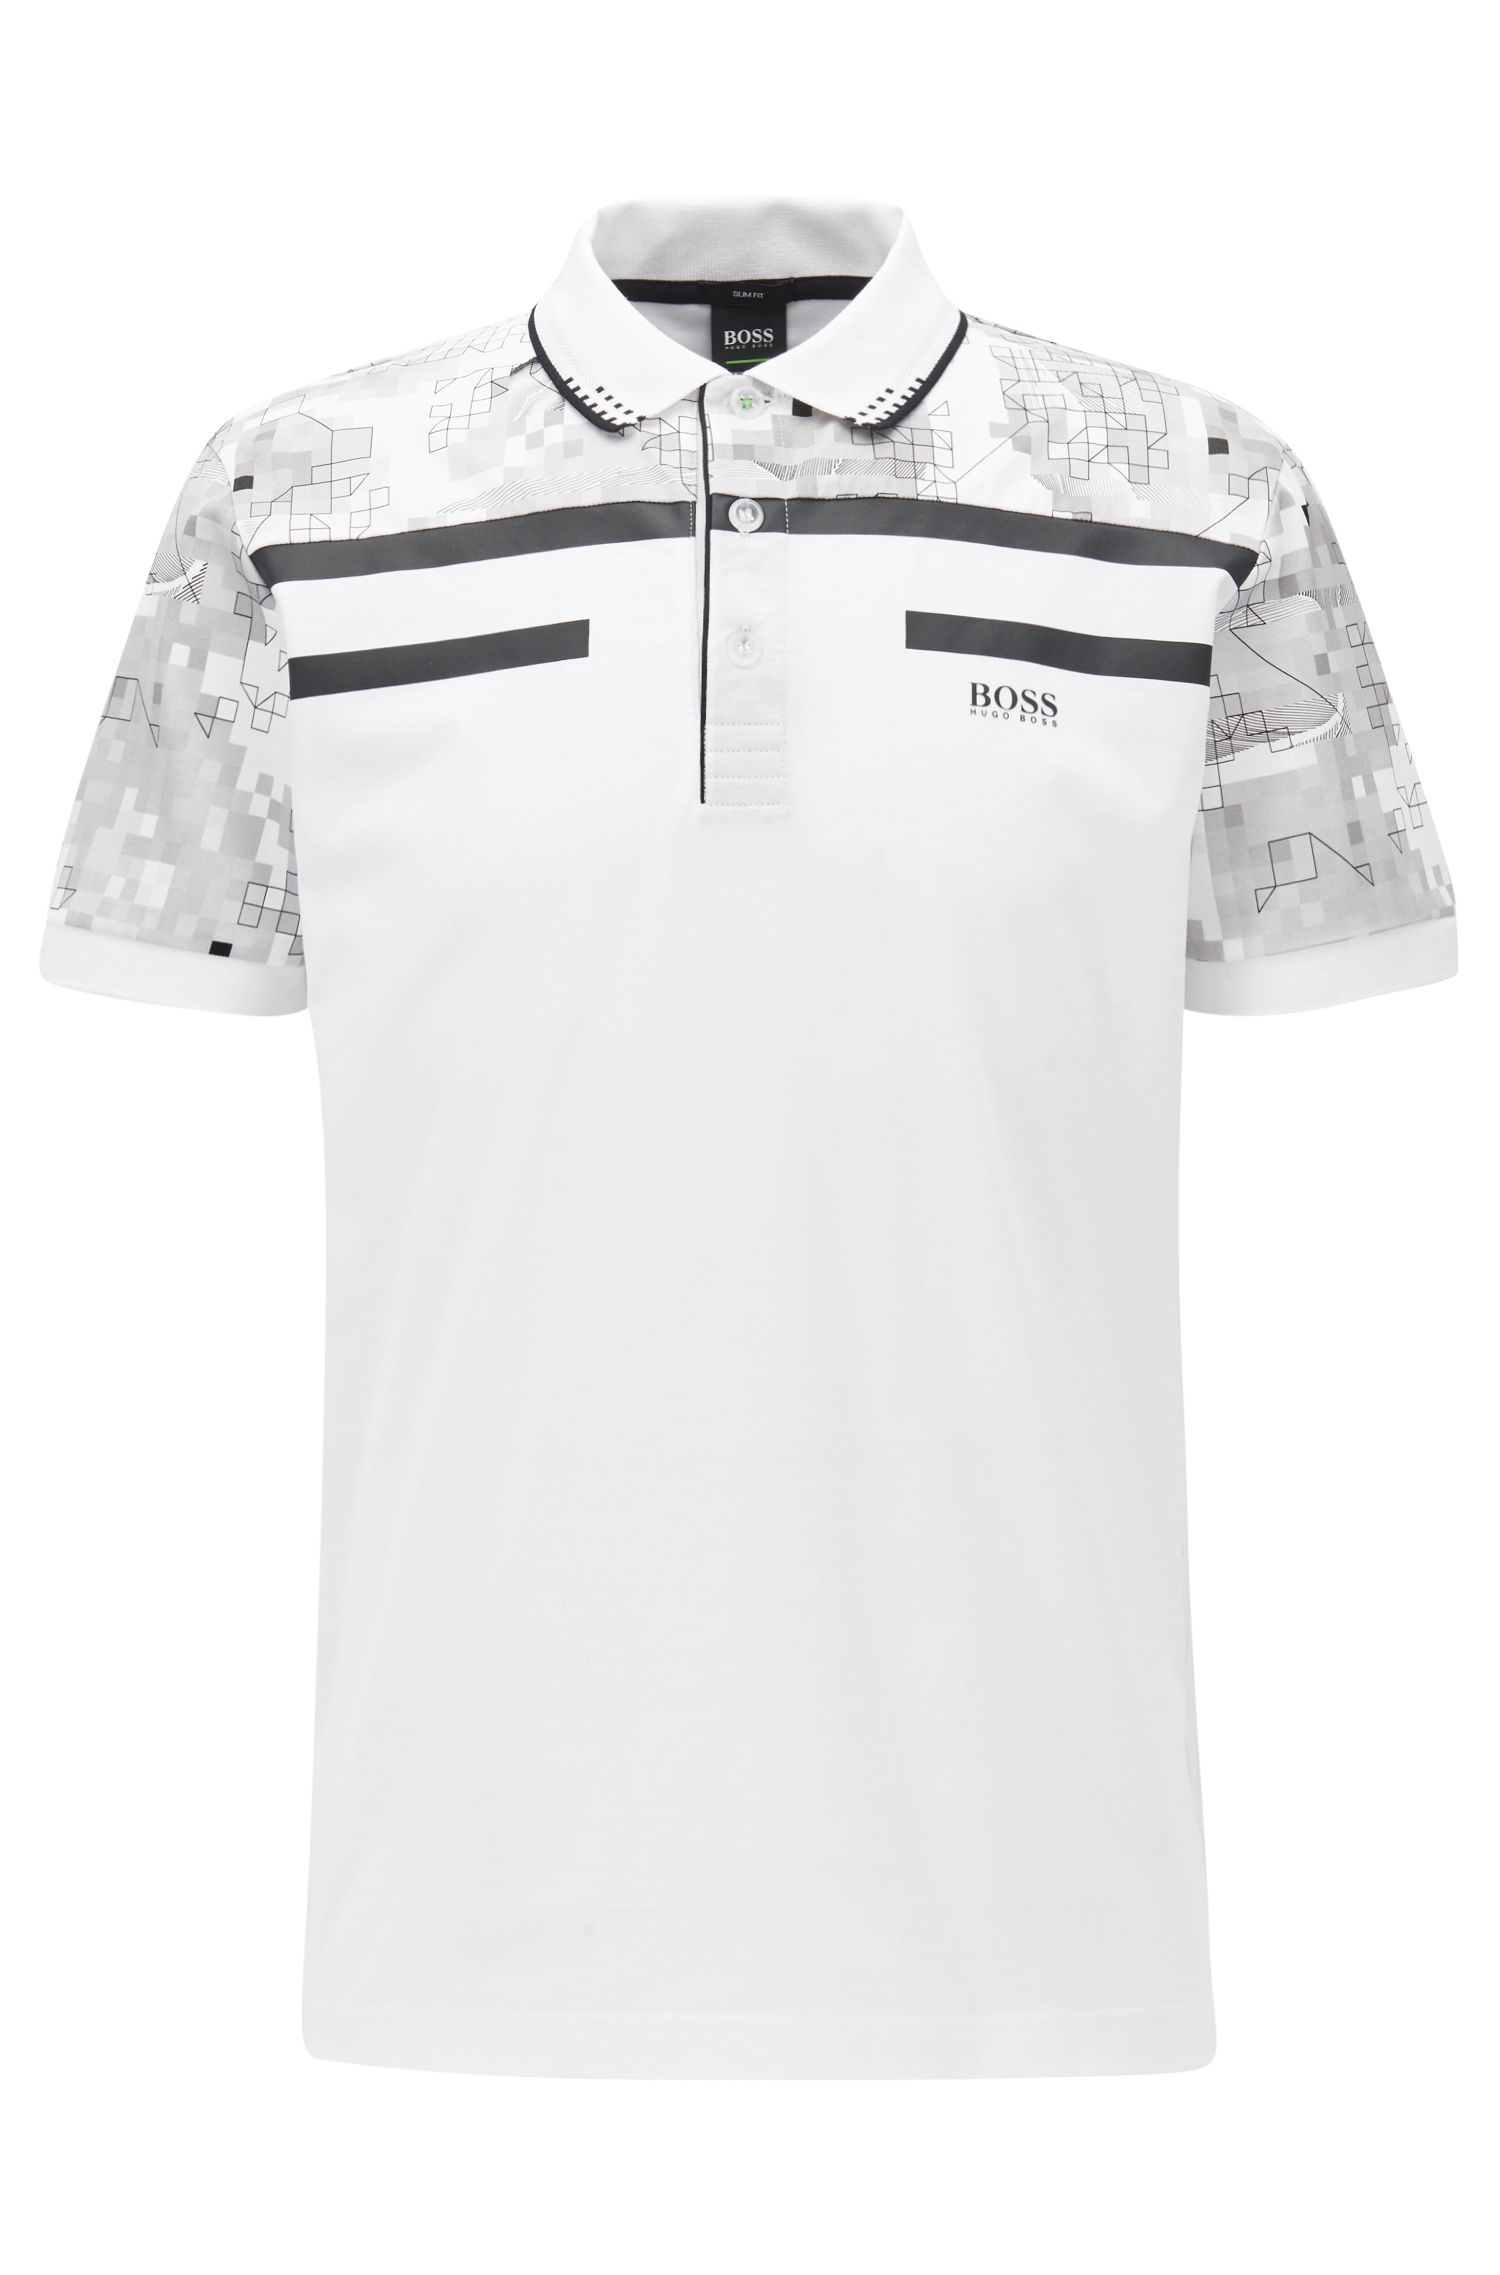 Geometric Mercerized Cotton Polo Shirt, Slim Fit | Paule